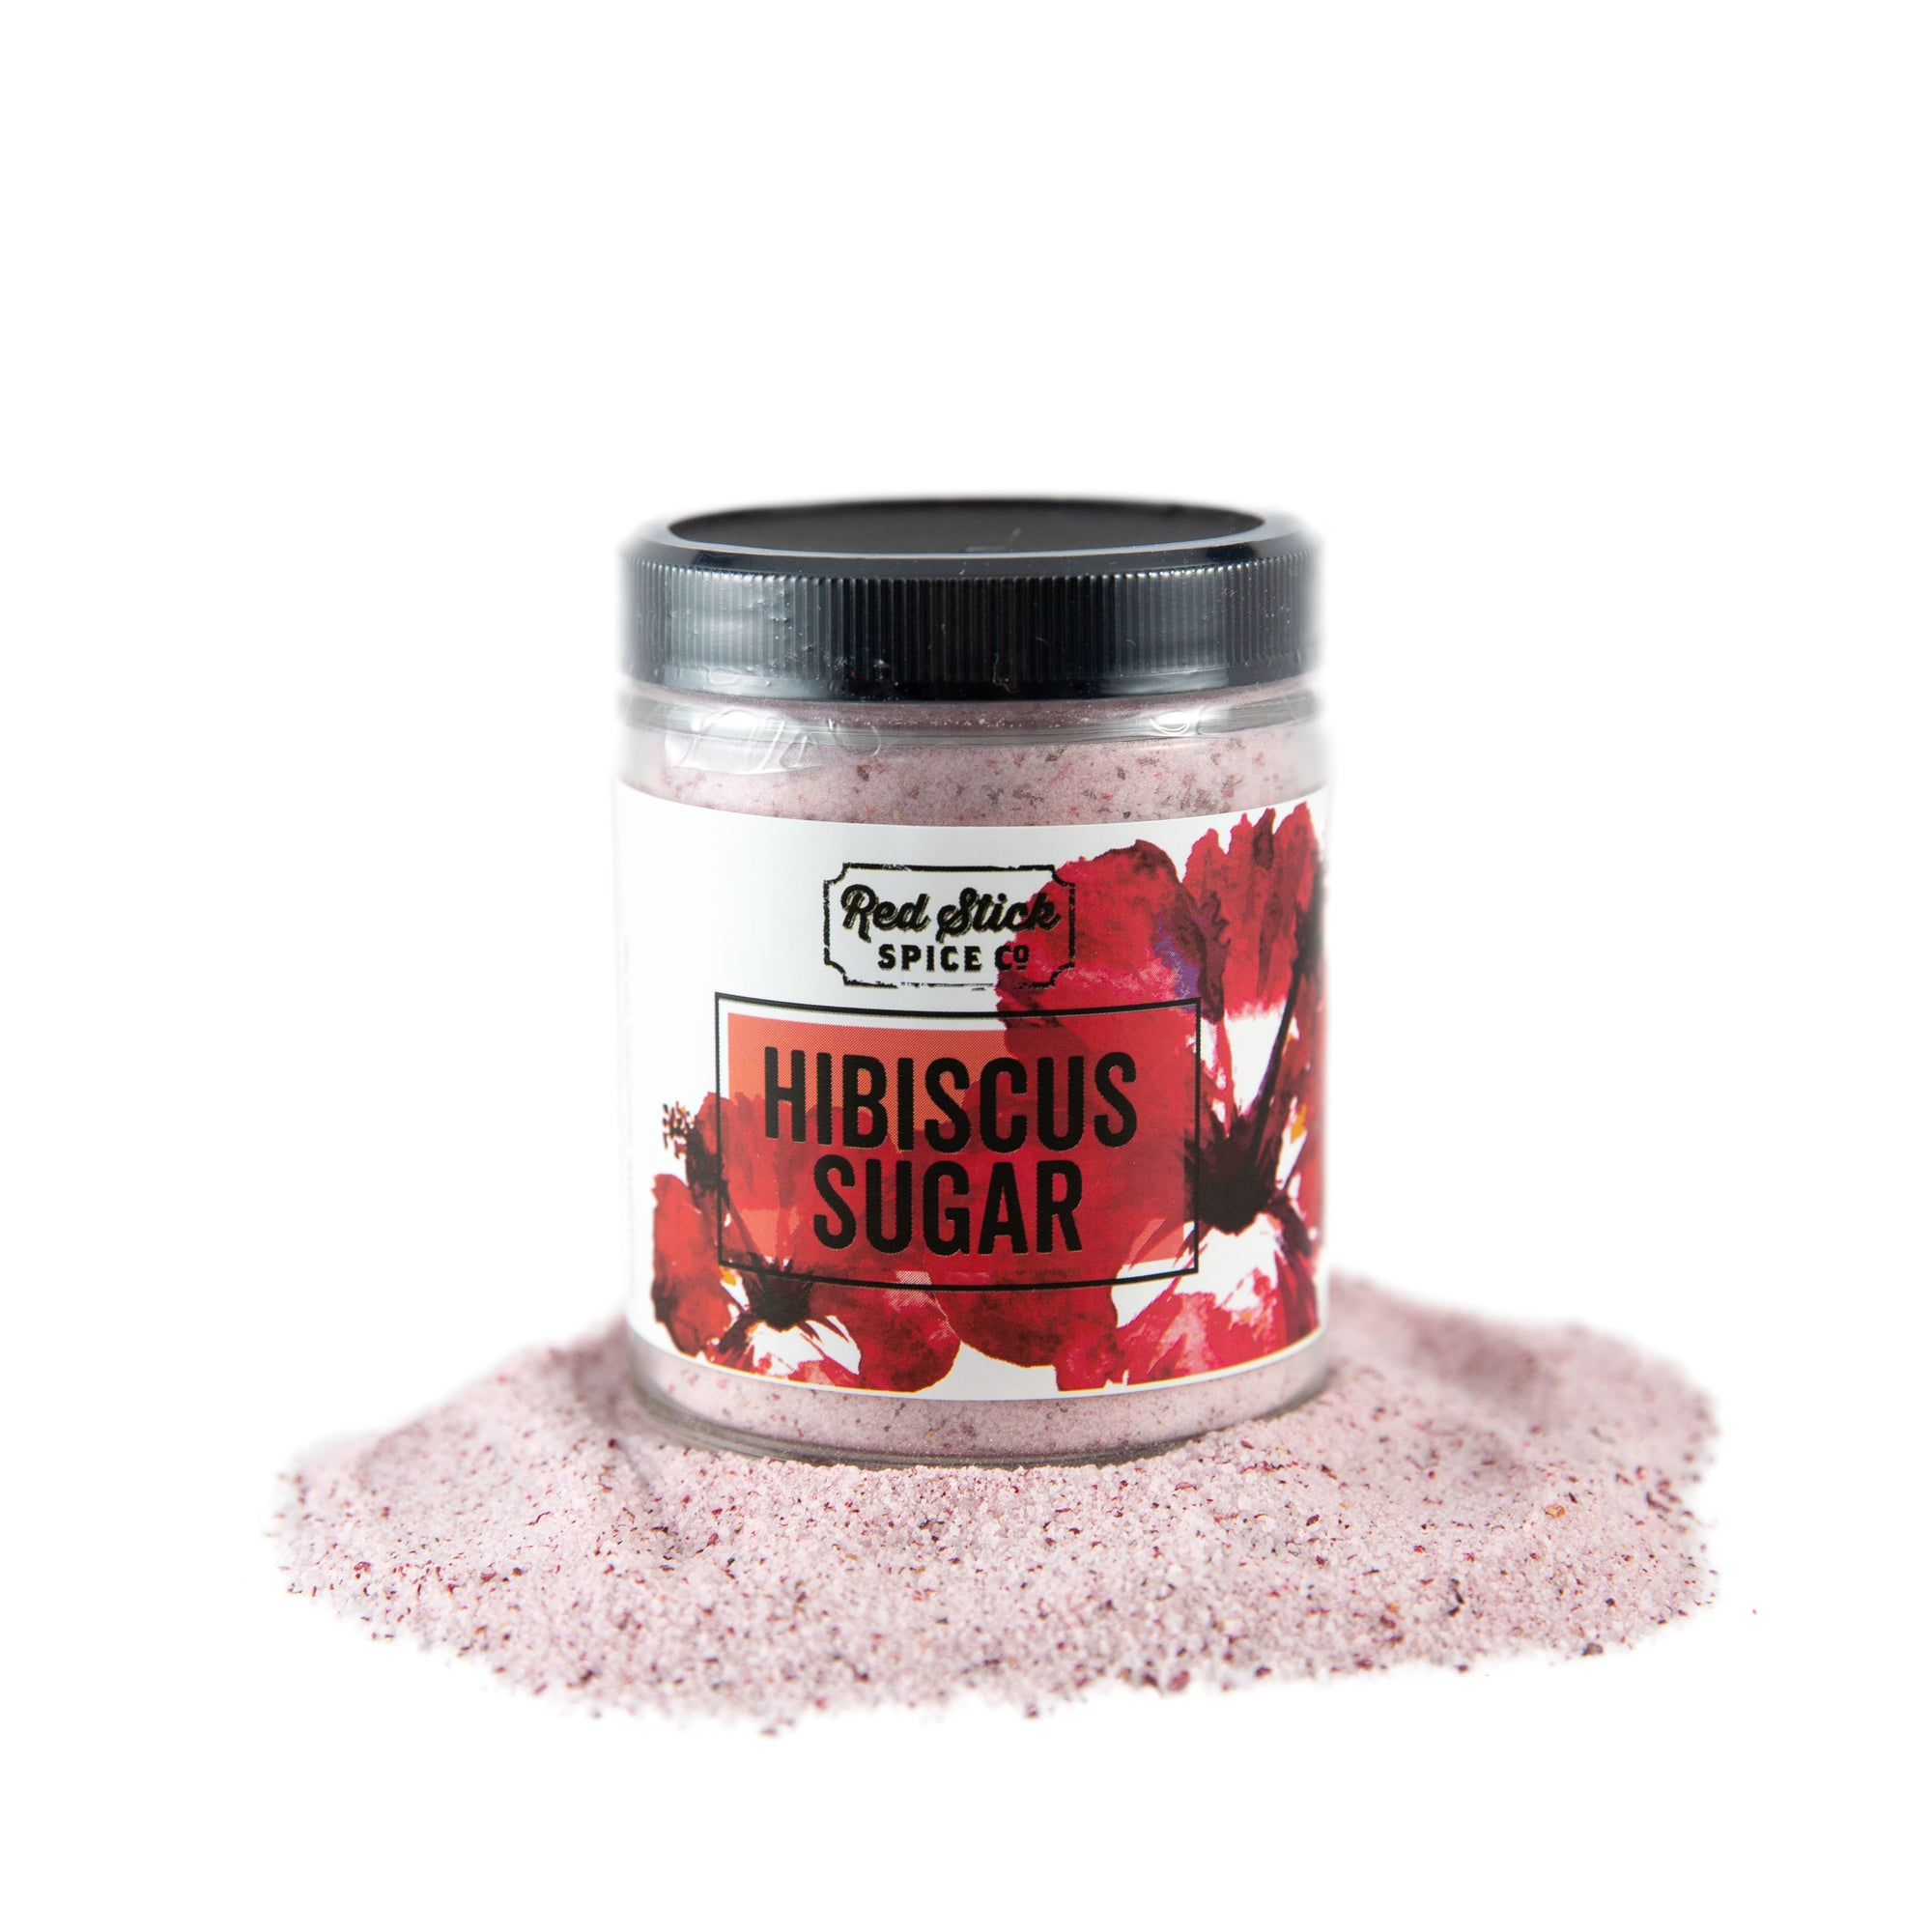 Hibiscus Sugar - Premium_Tea - Red Stick Spice Company